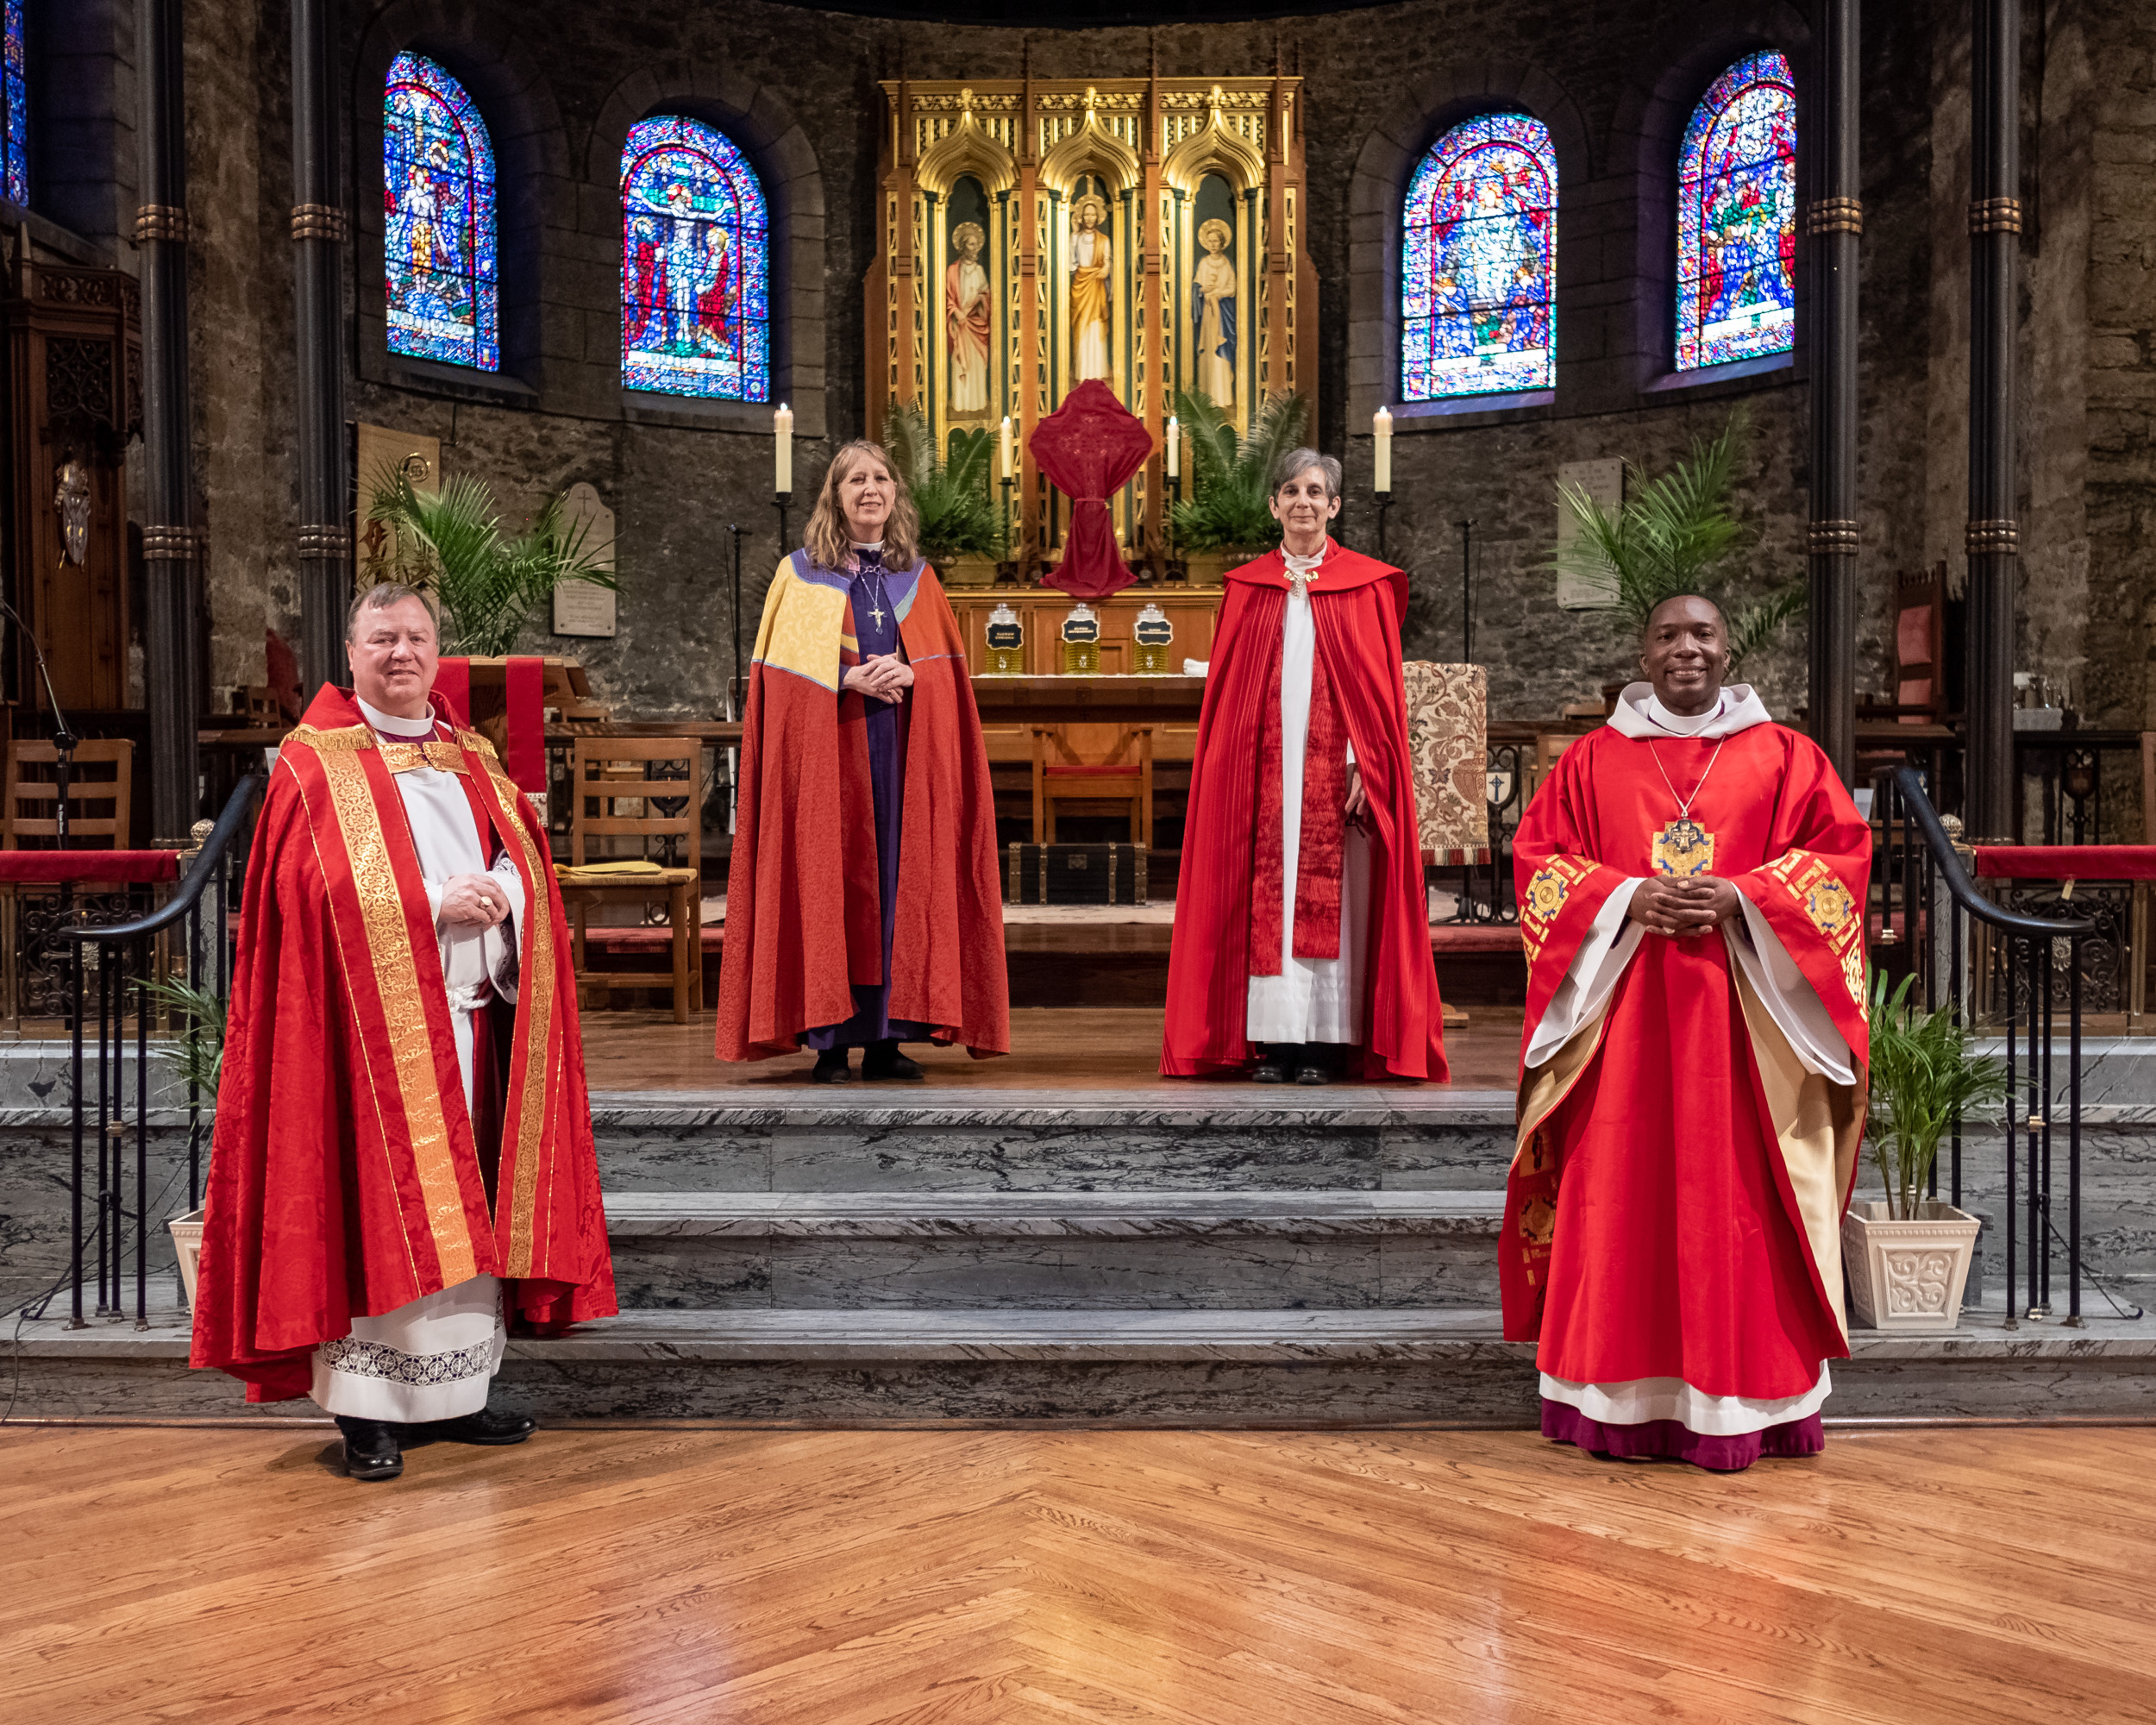 Four dioceses of The Episcopal Church and a Synod of the Evangelical Lutheran Church in America hold a joint service to renew baptismal and ordination vows and to bless oils